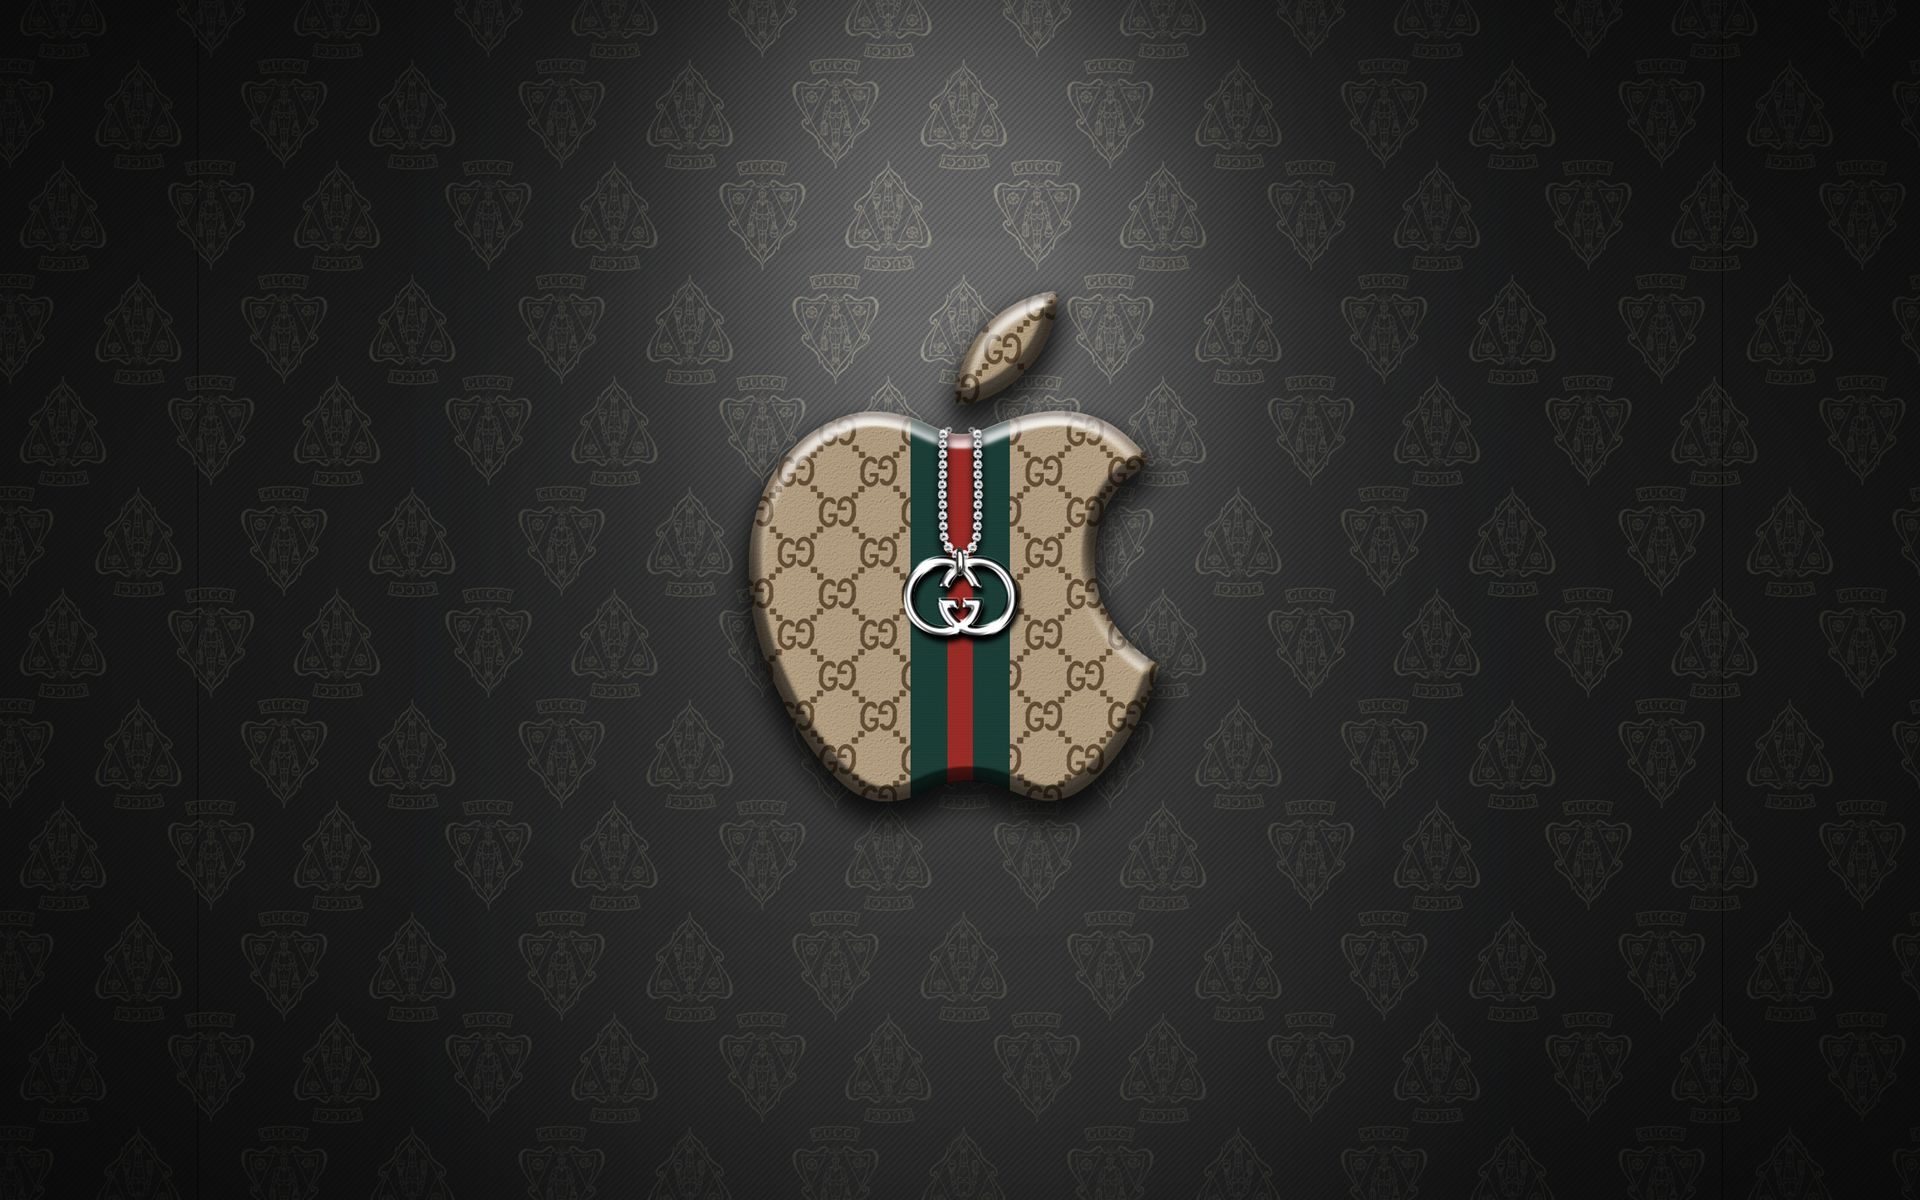 Background download gucci logo apple 1920x1200. Fondos